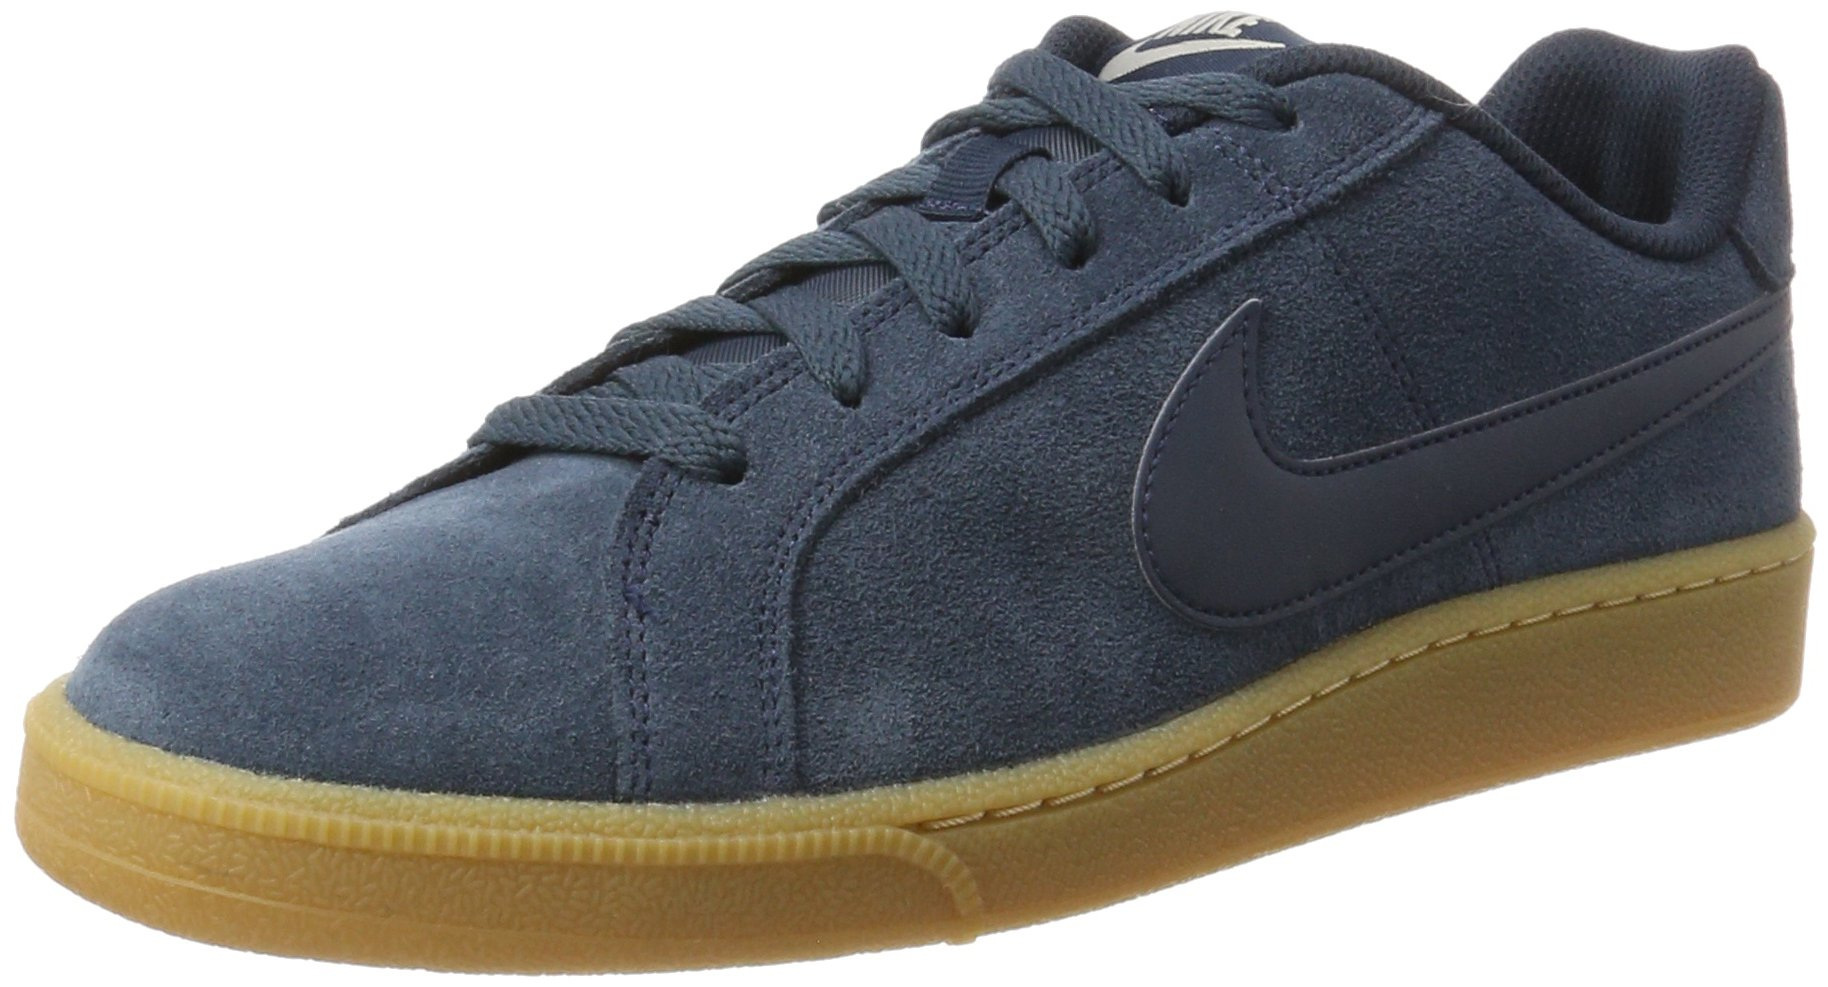 sale retailer f3965 98715 Galleon - Nike Mens Court Royale Suede Shoes Armory Navy 9.5